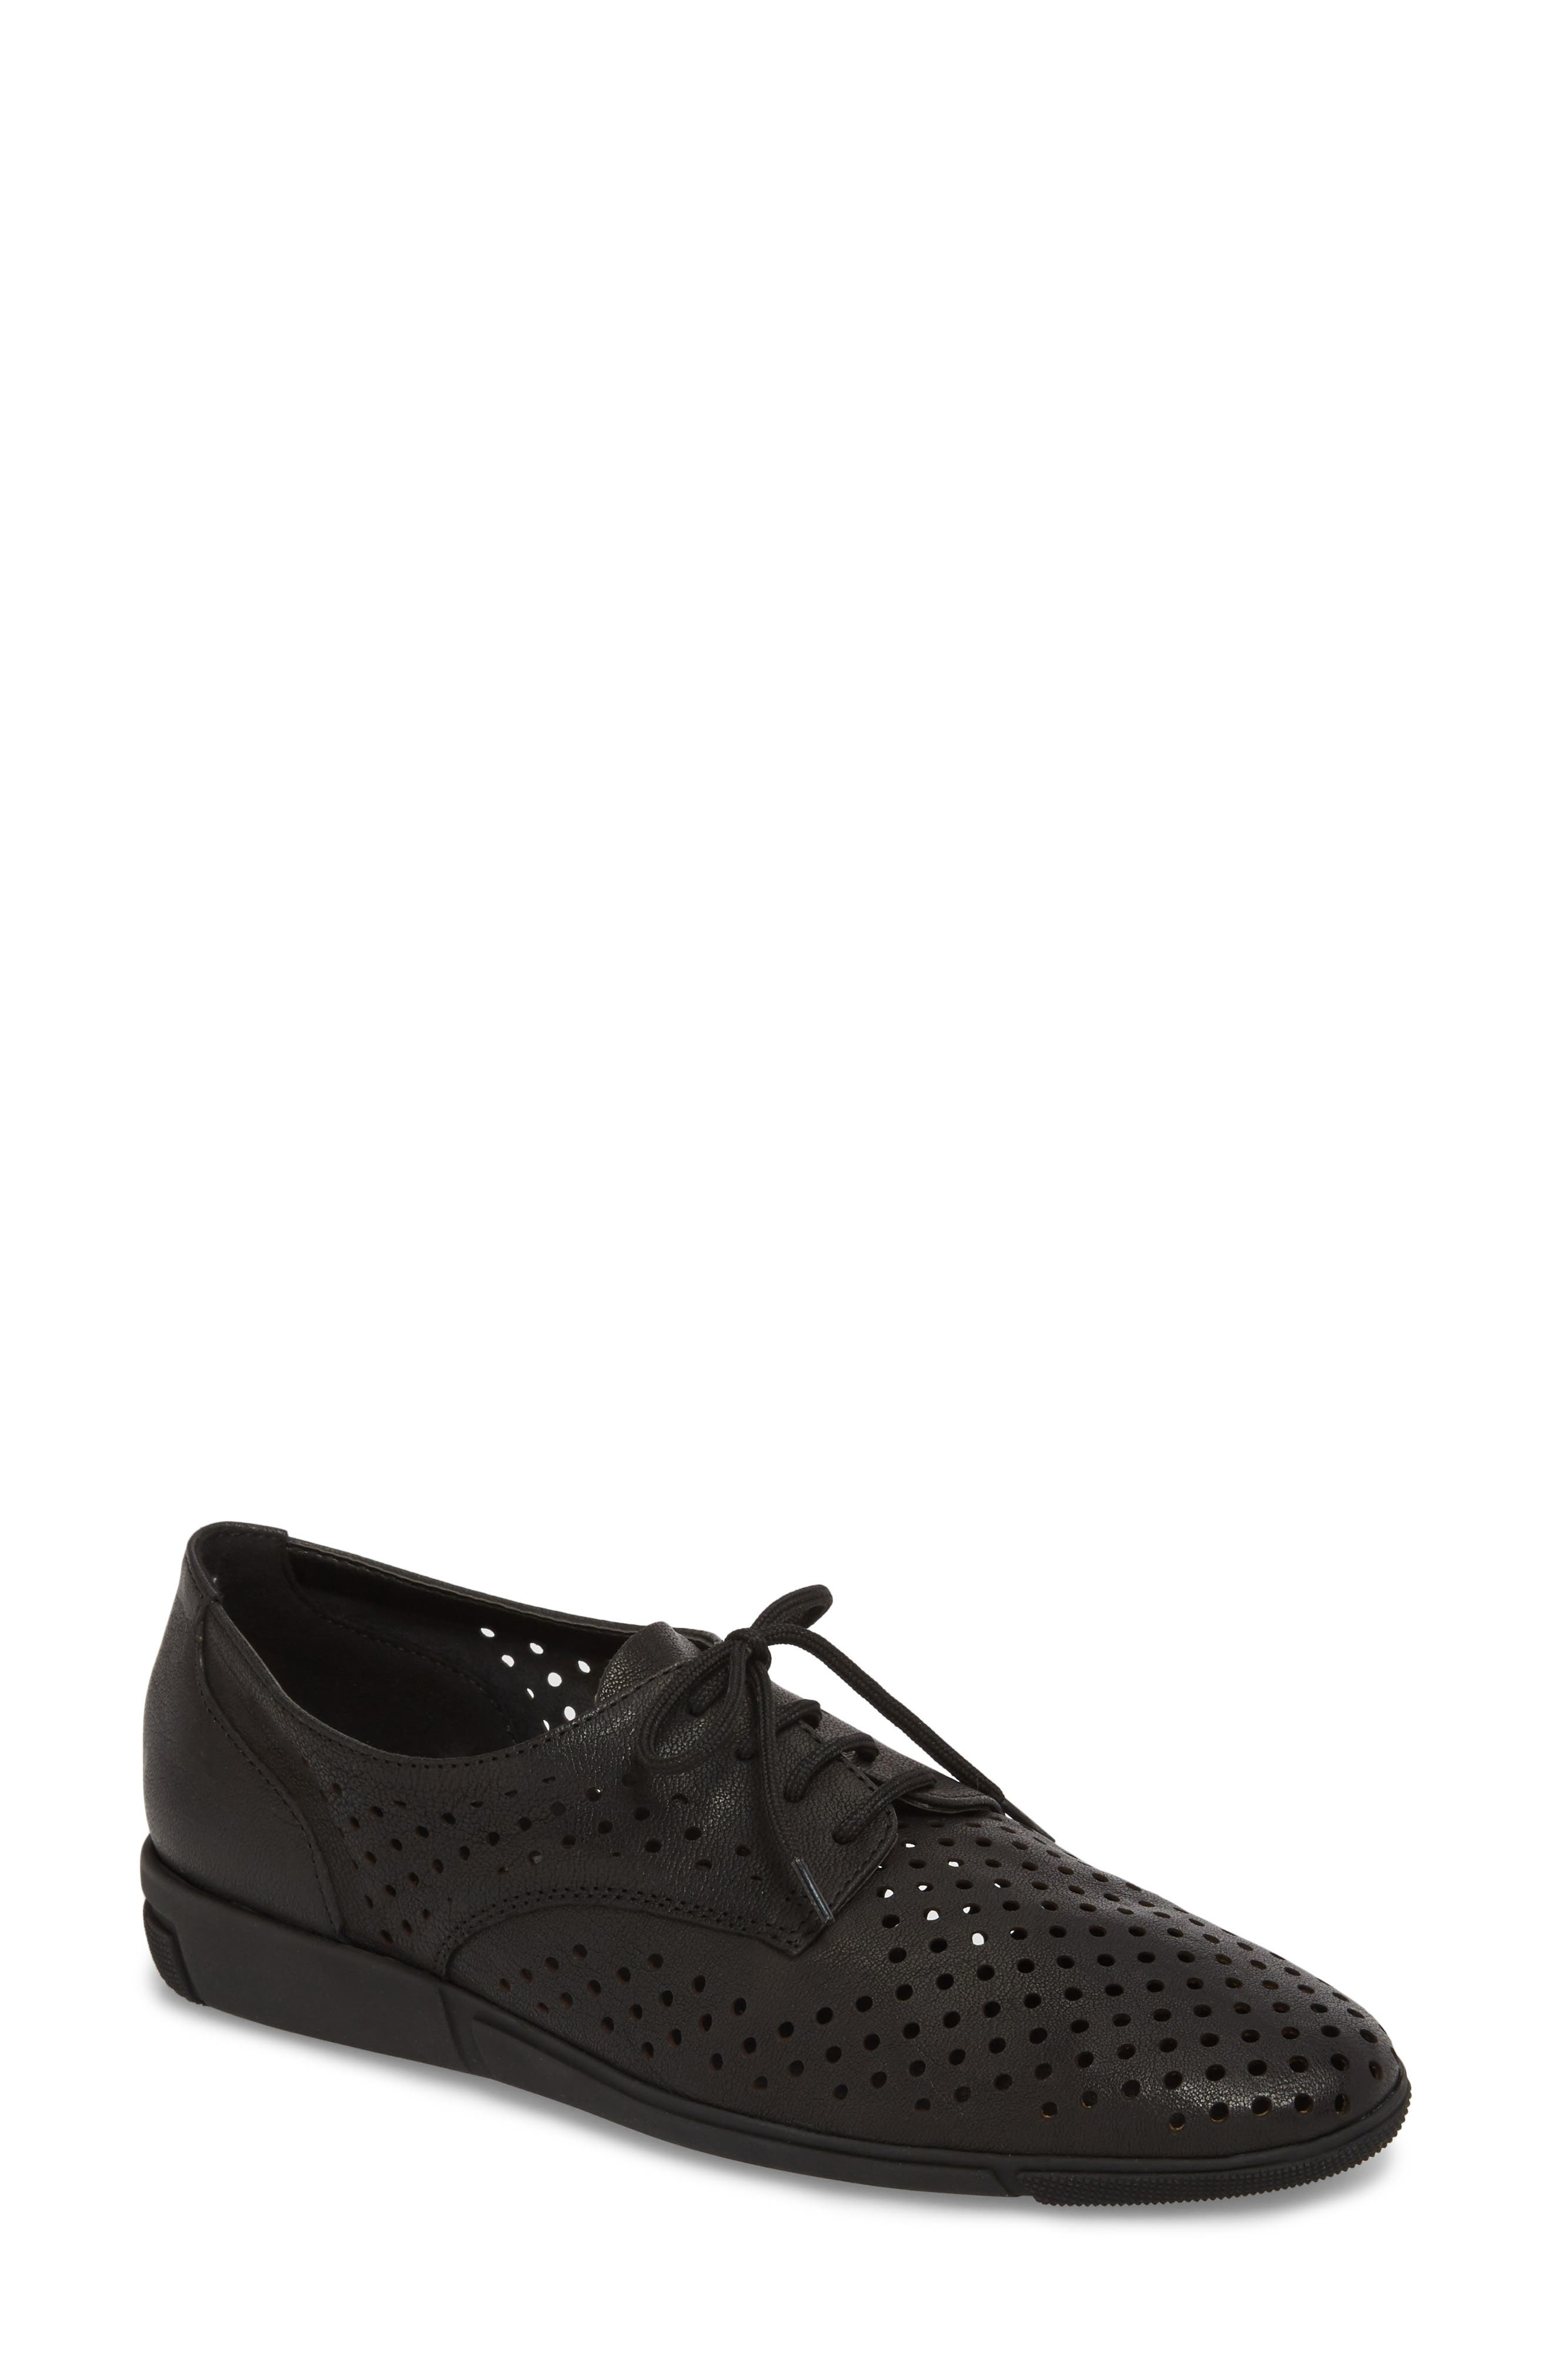 Dirce Perforated Oxford Flat,                         Main,                         color, 001